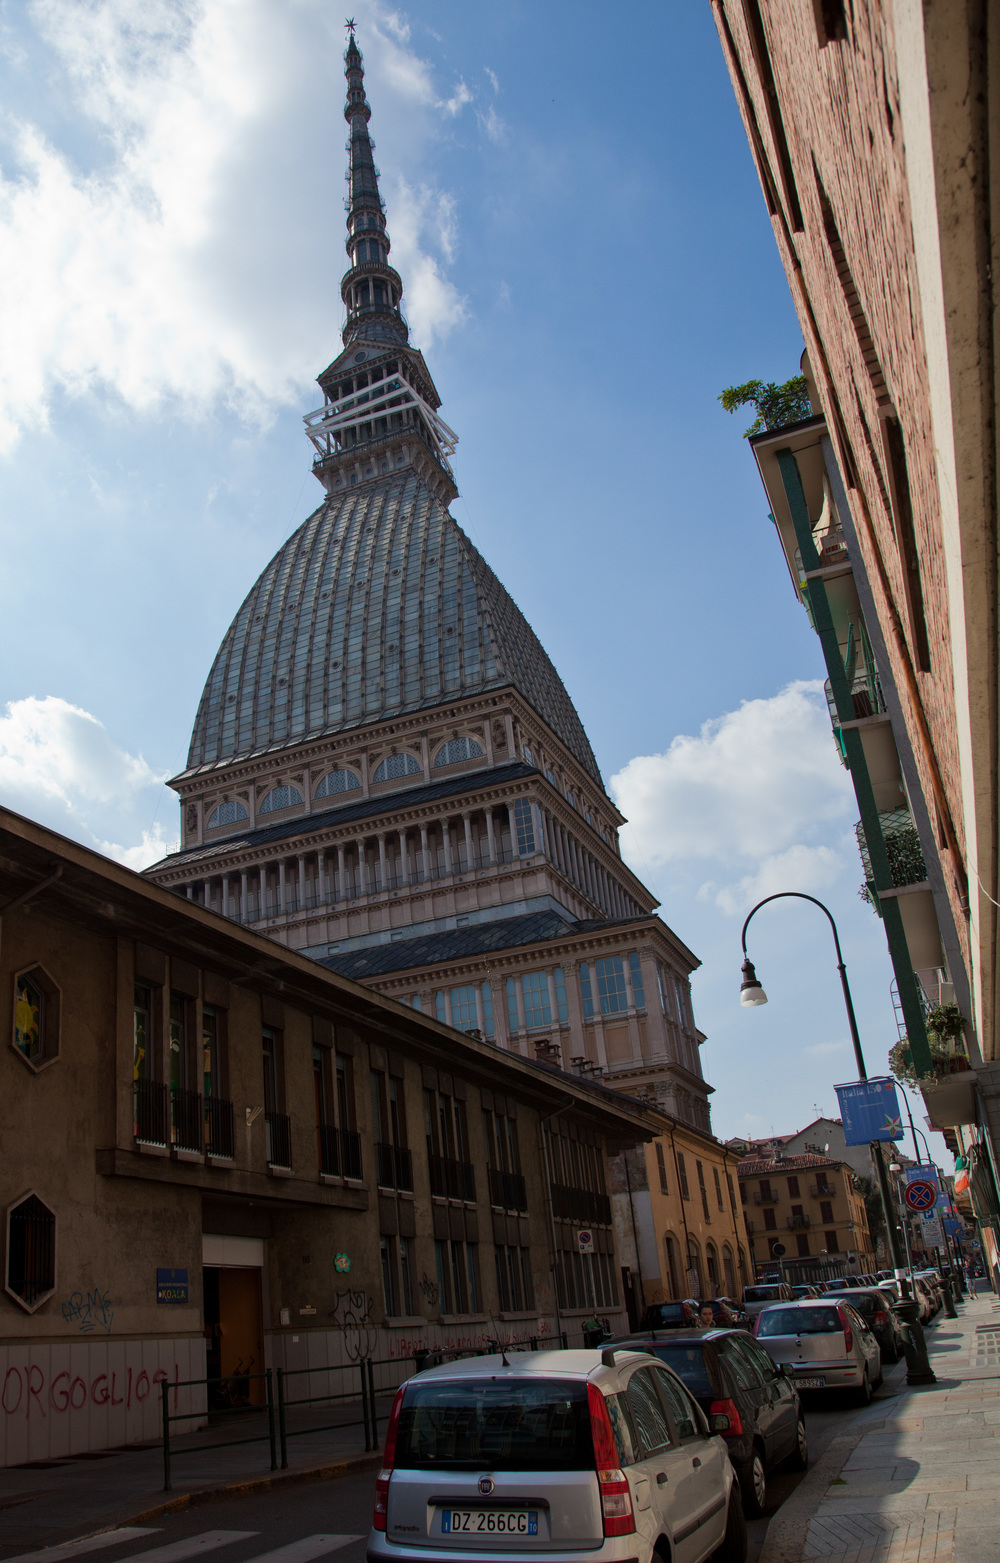 The Mole Antonelliana